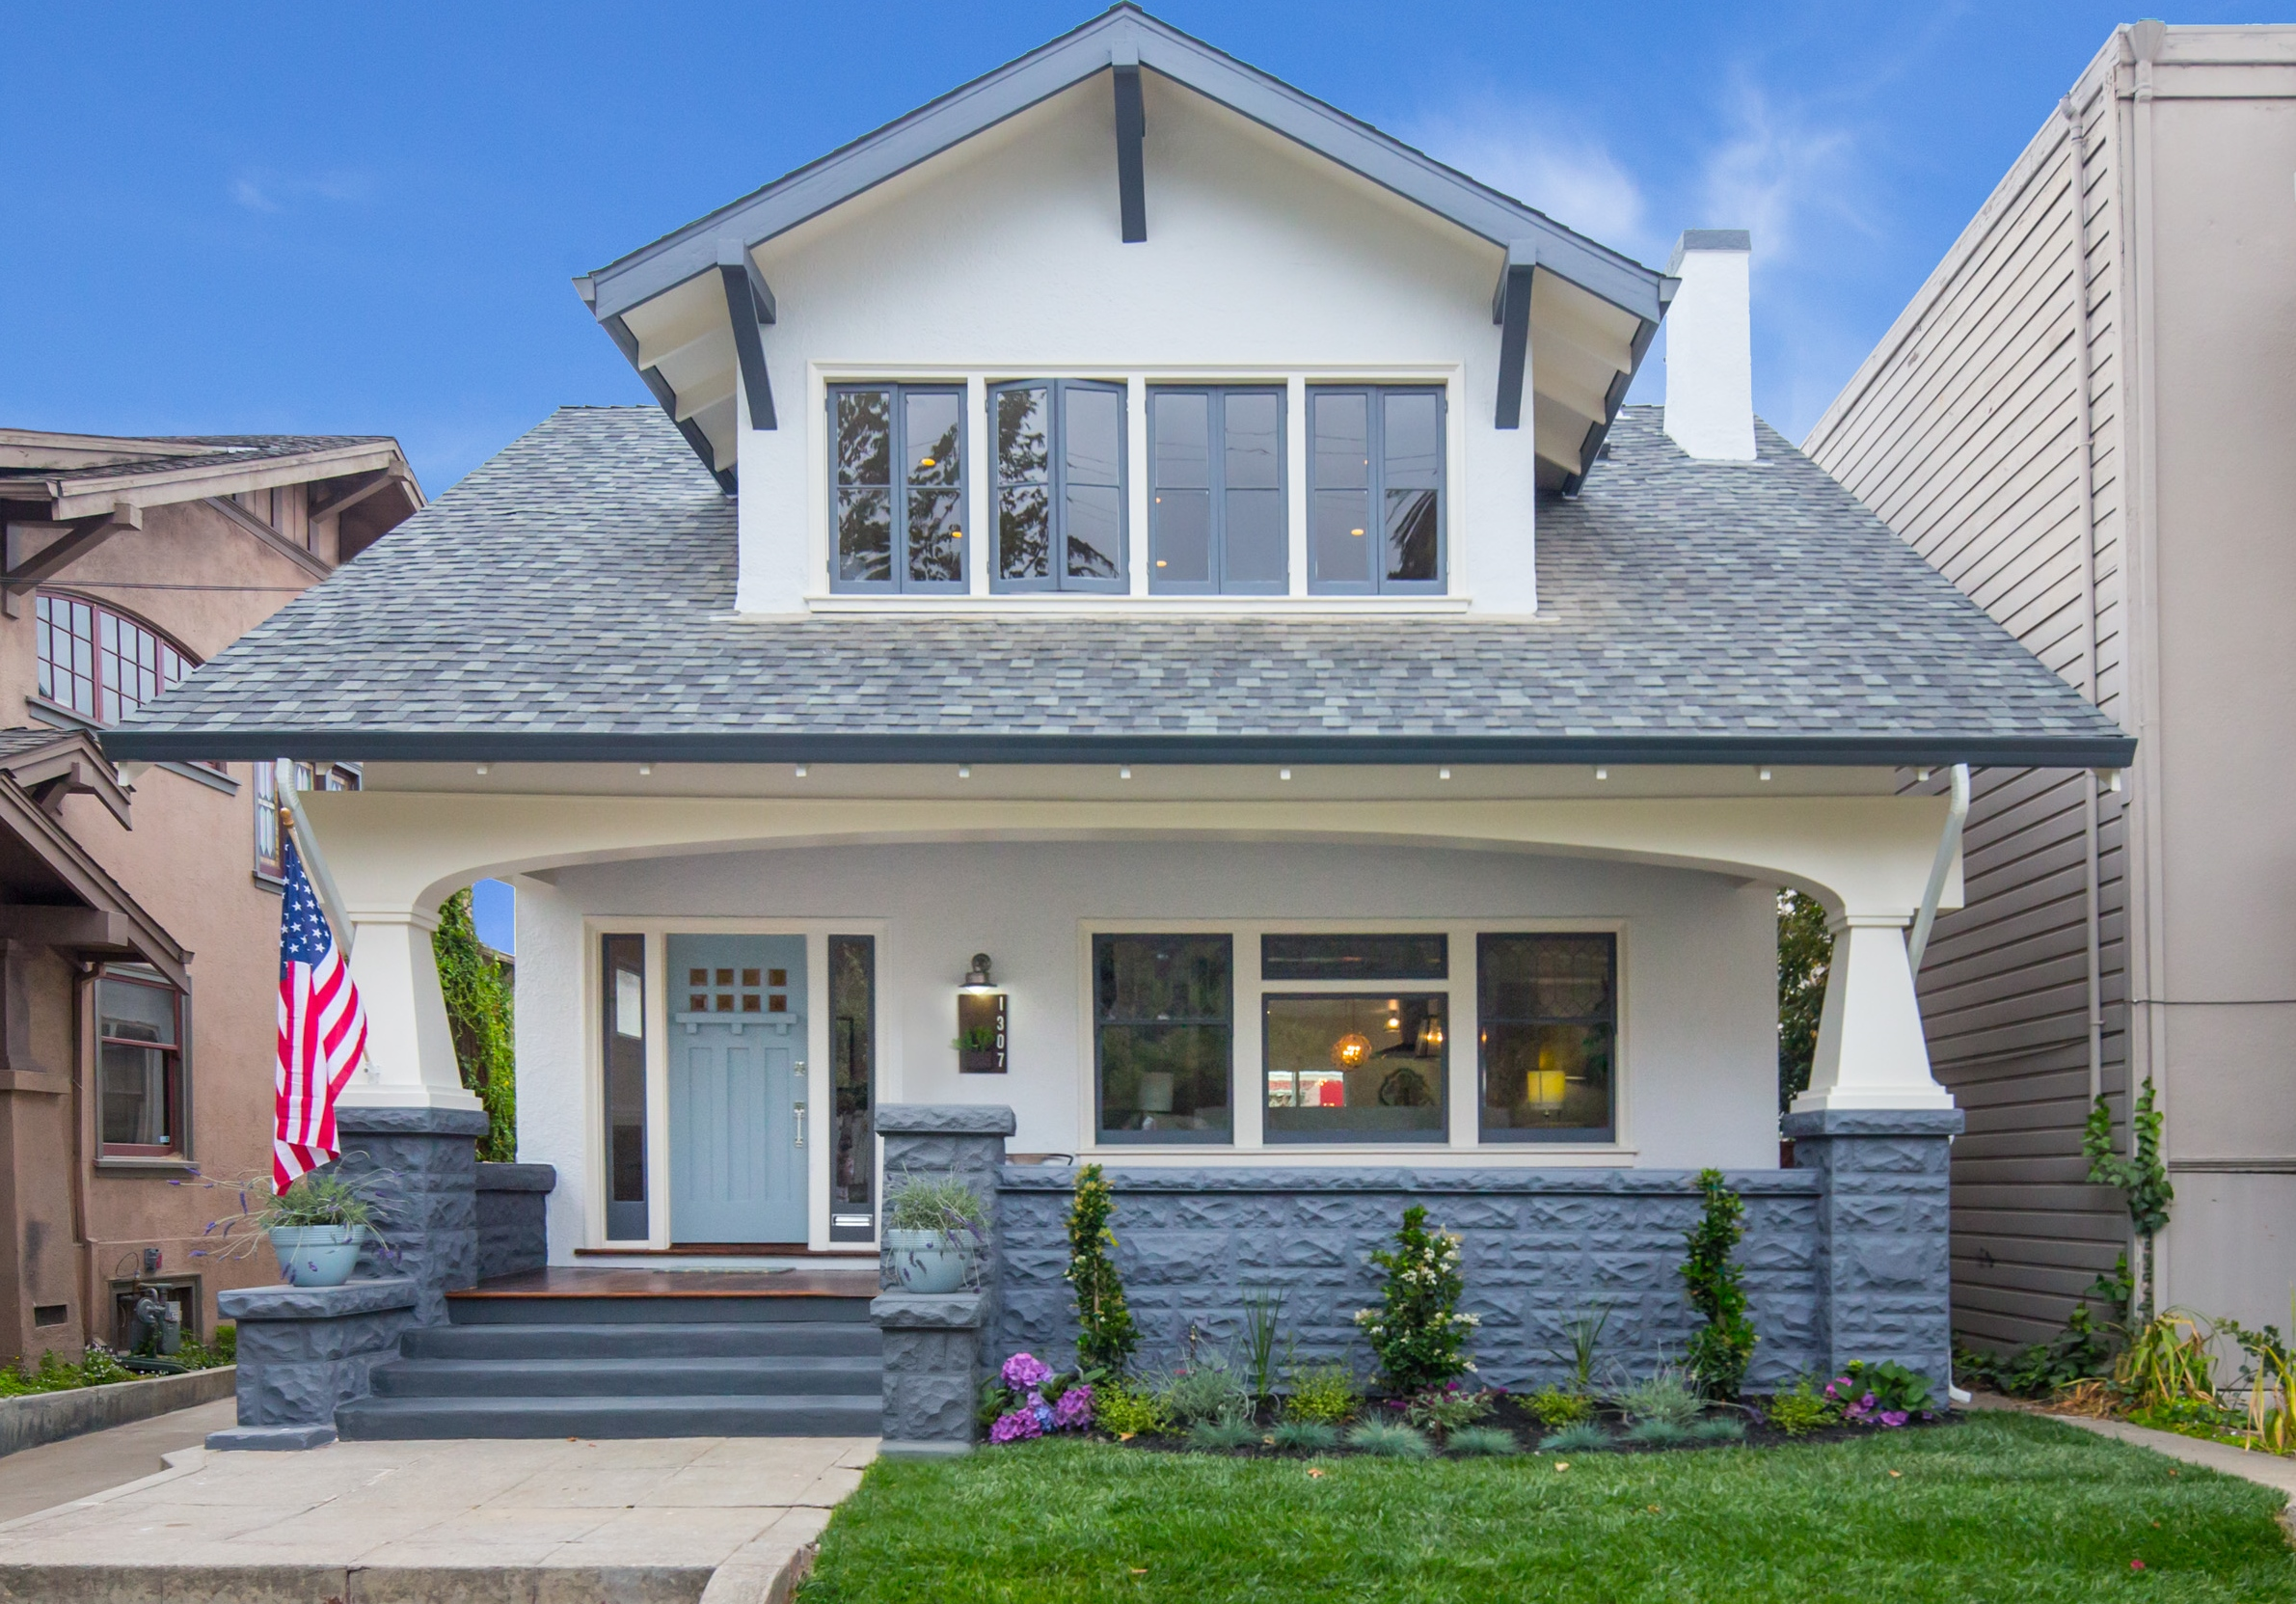 before and after renovation in Oakland, Glenview